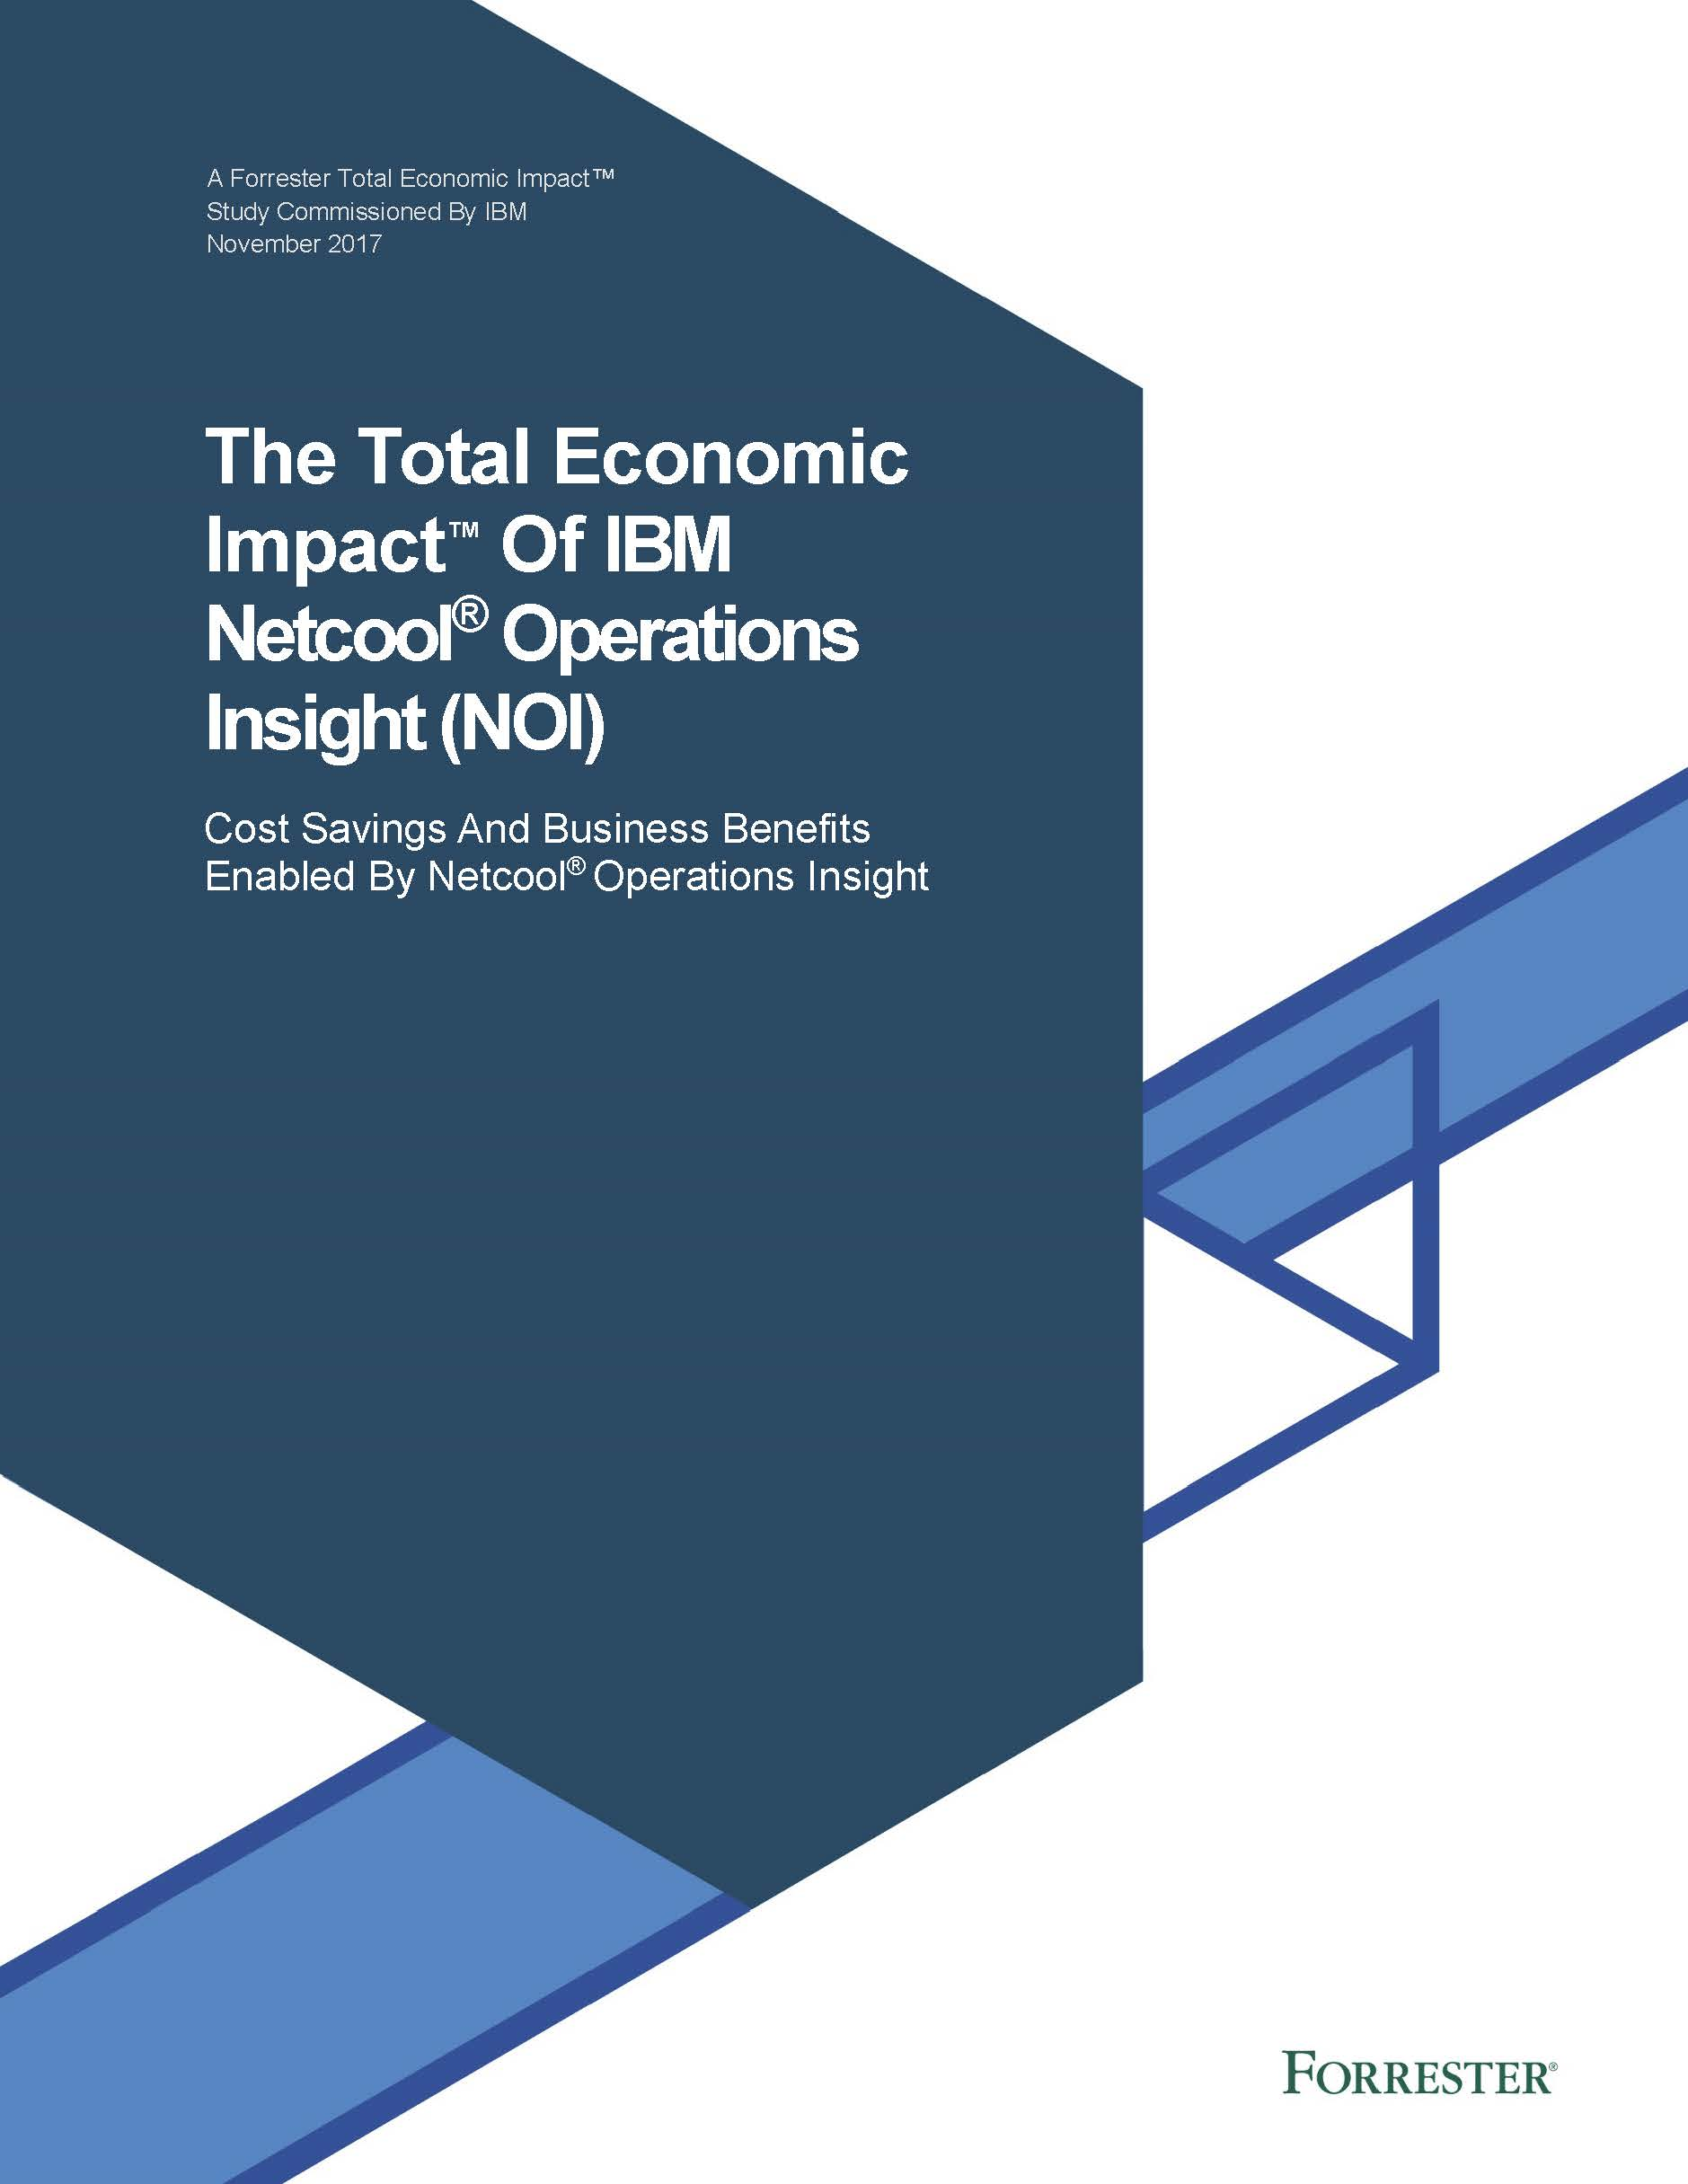 the-total-economic-impact-of-ibm-netcool-operations-insight-noi_KUL12423USEN_Page_01